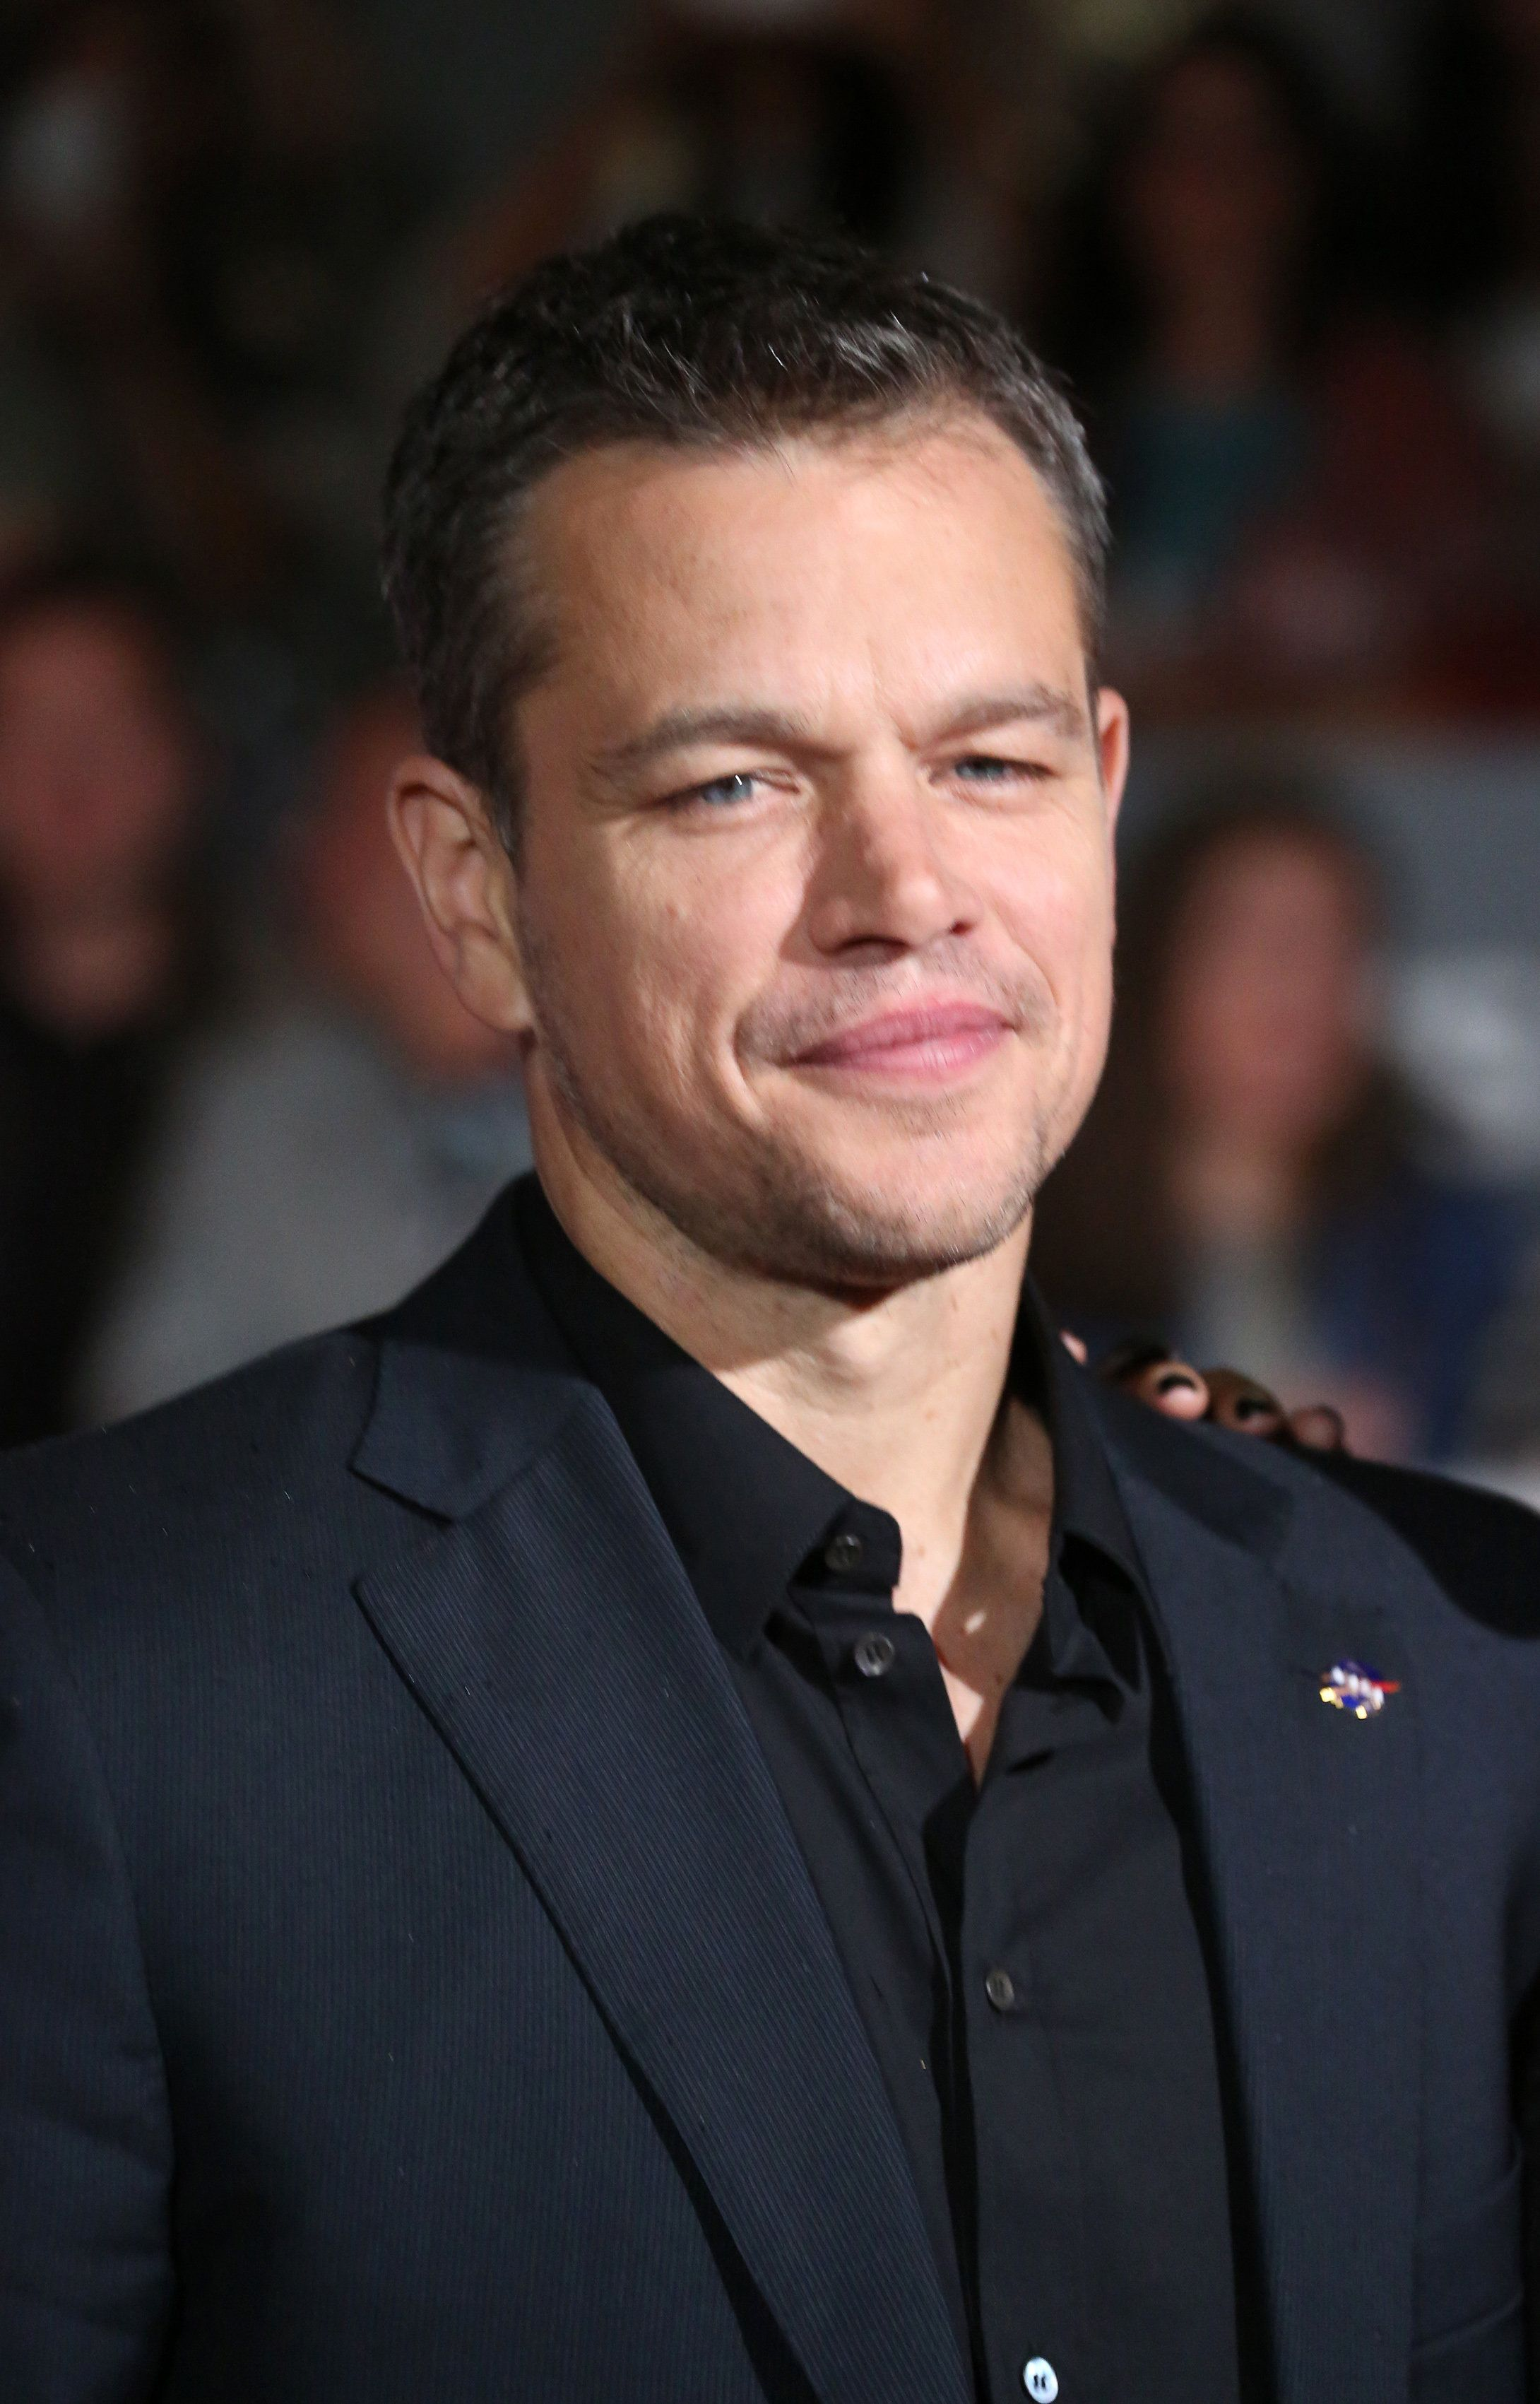 TORONTO, ON - SEPTEMBER 11:  Matt Damon attends the premiere of 'The Martian' at Roy Thomson Hall during the 2015 Toronto International Film Festival on September 11, 2015 in Toronto, Canada.  (Photo by Walter McBride/FilmMagic)